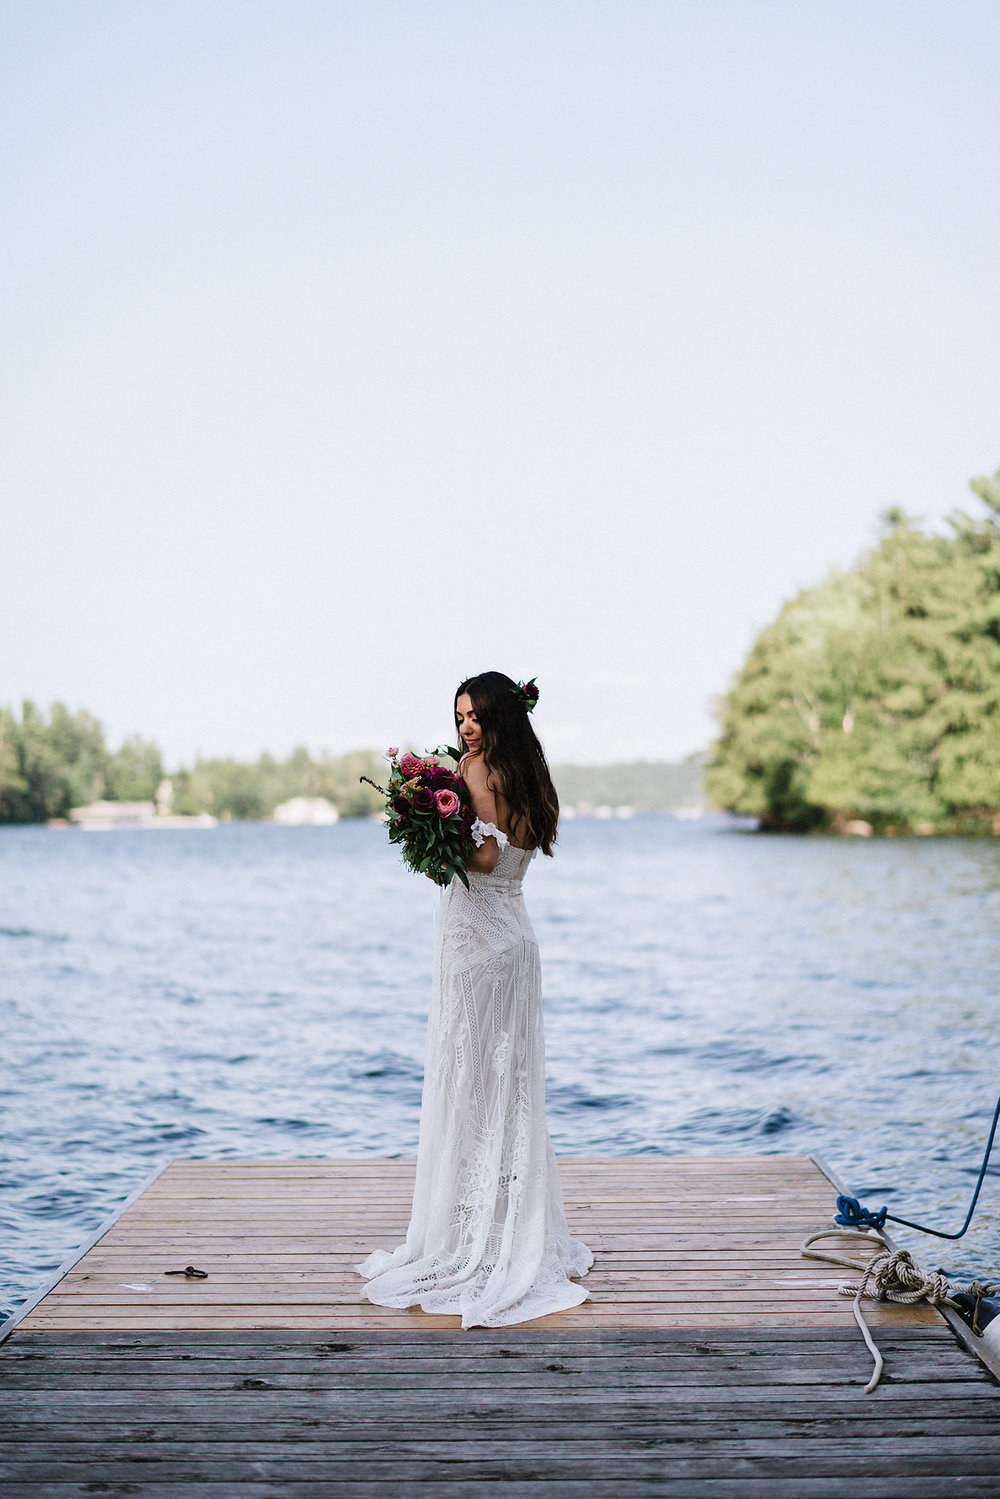 Muskoka-Cottage-Wedding-Photography-Photographer_Photojournalistic-Documentary-Wedding-Photography_Vintage-Bride-Lovers-Land-Dress_Rue-Des-Seins_Bridal-Portrait-Boho-bride-Toronto-Bride-by-lakeside.jpg